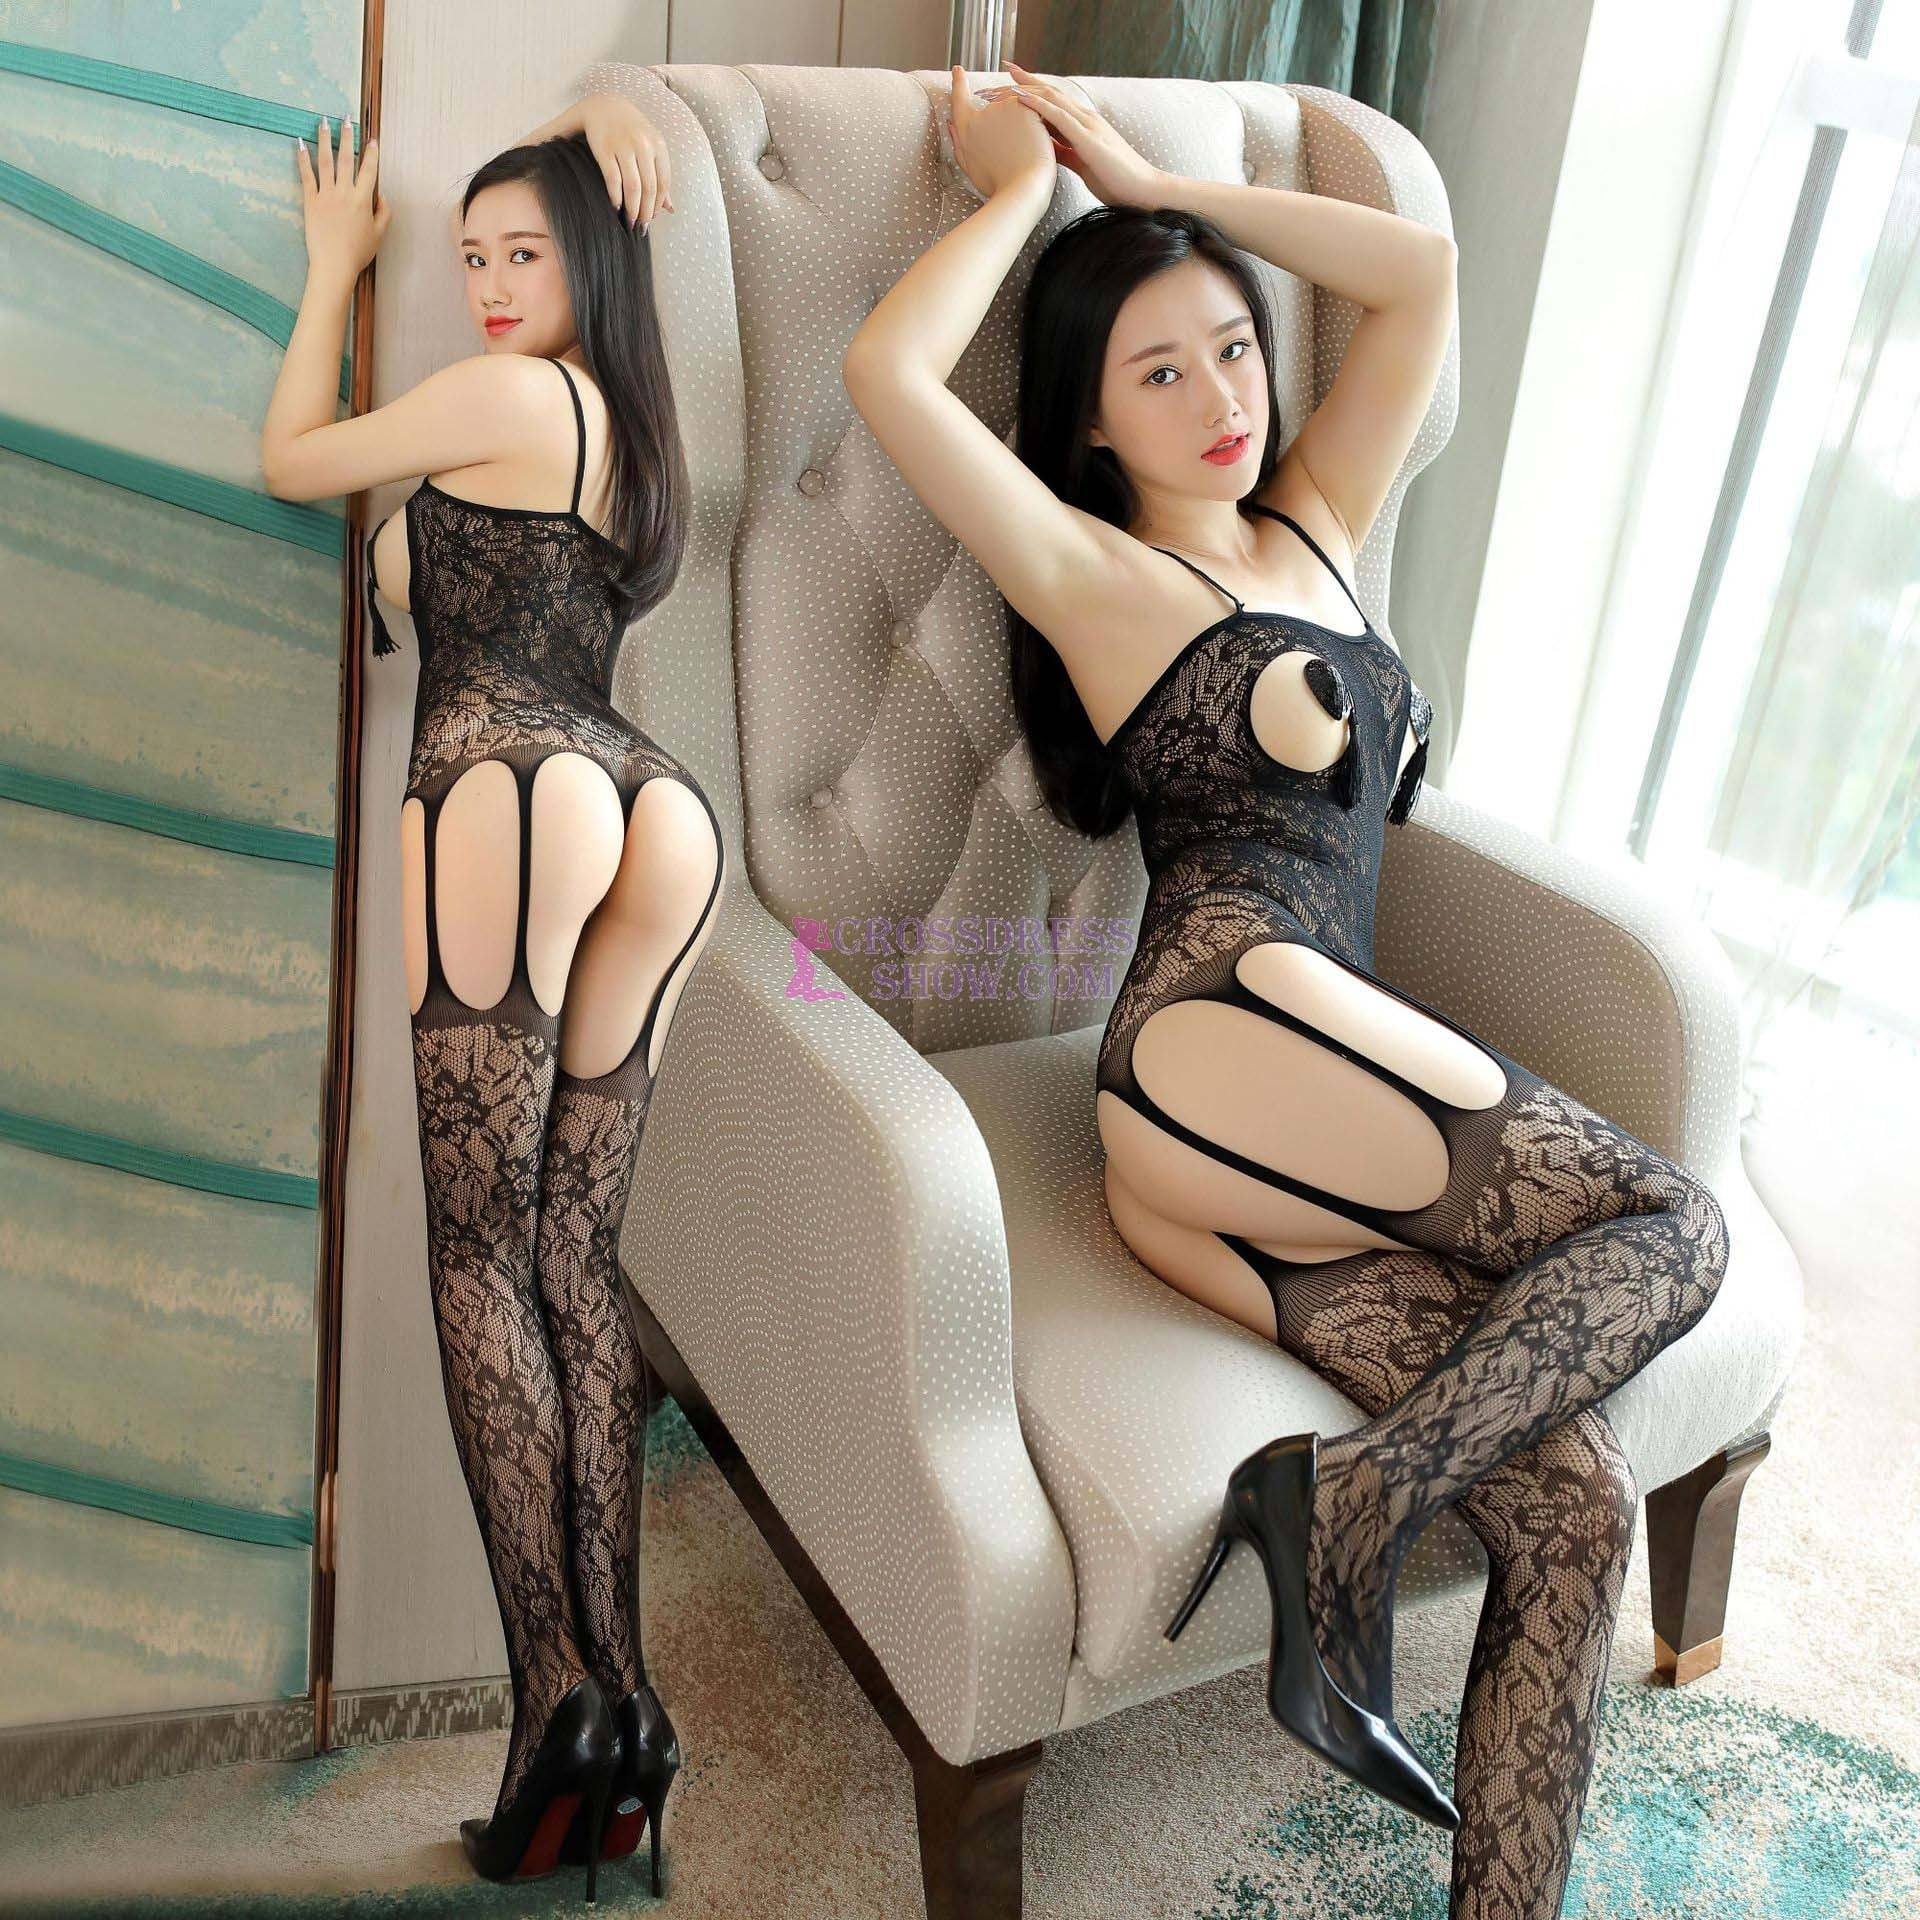 Floral Sling Open Bodystocking 7027